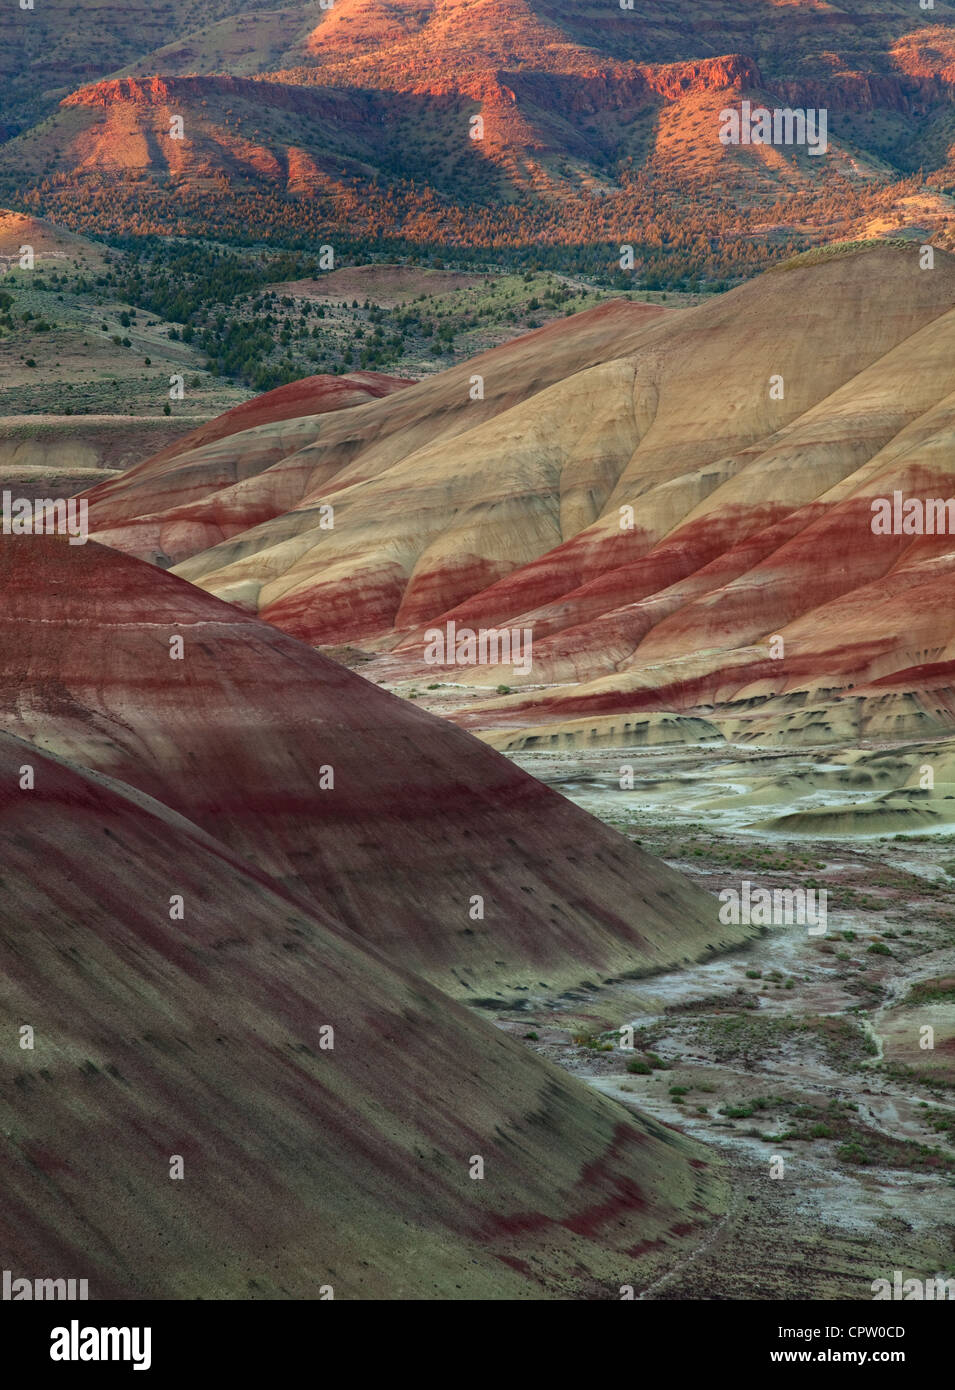 John Day Fossil Beds National Monument, OR: Patterns and stratified colors in the volcanic formations of the Painted - Stock Image